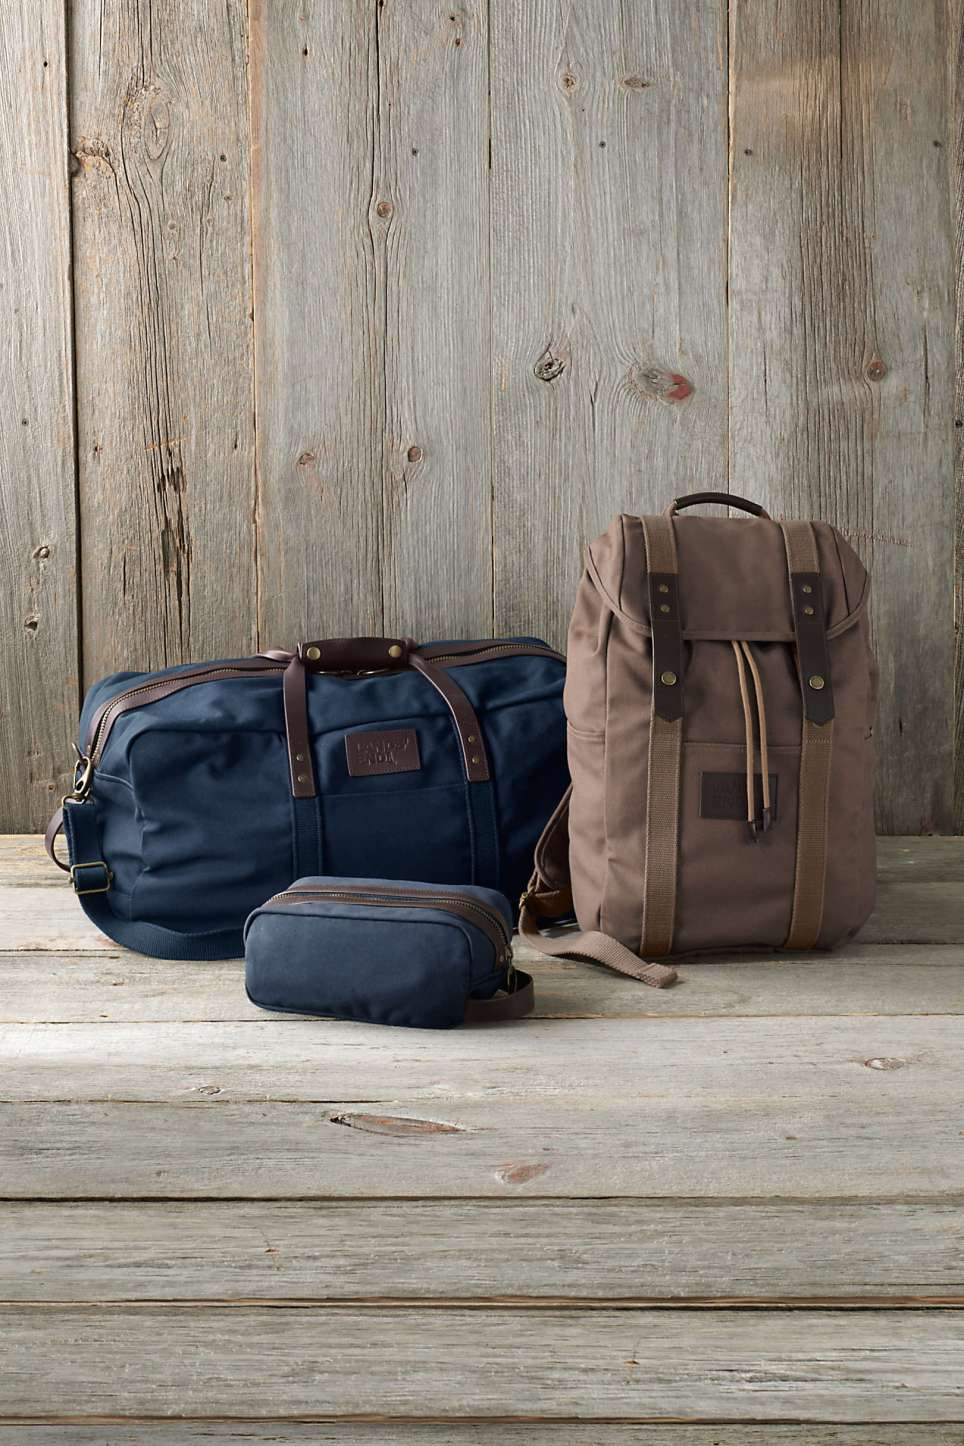 Land's End Waxed Canvas Travel Duffle Bag